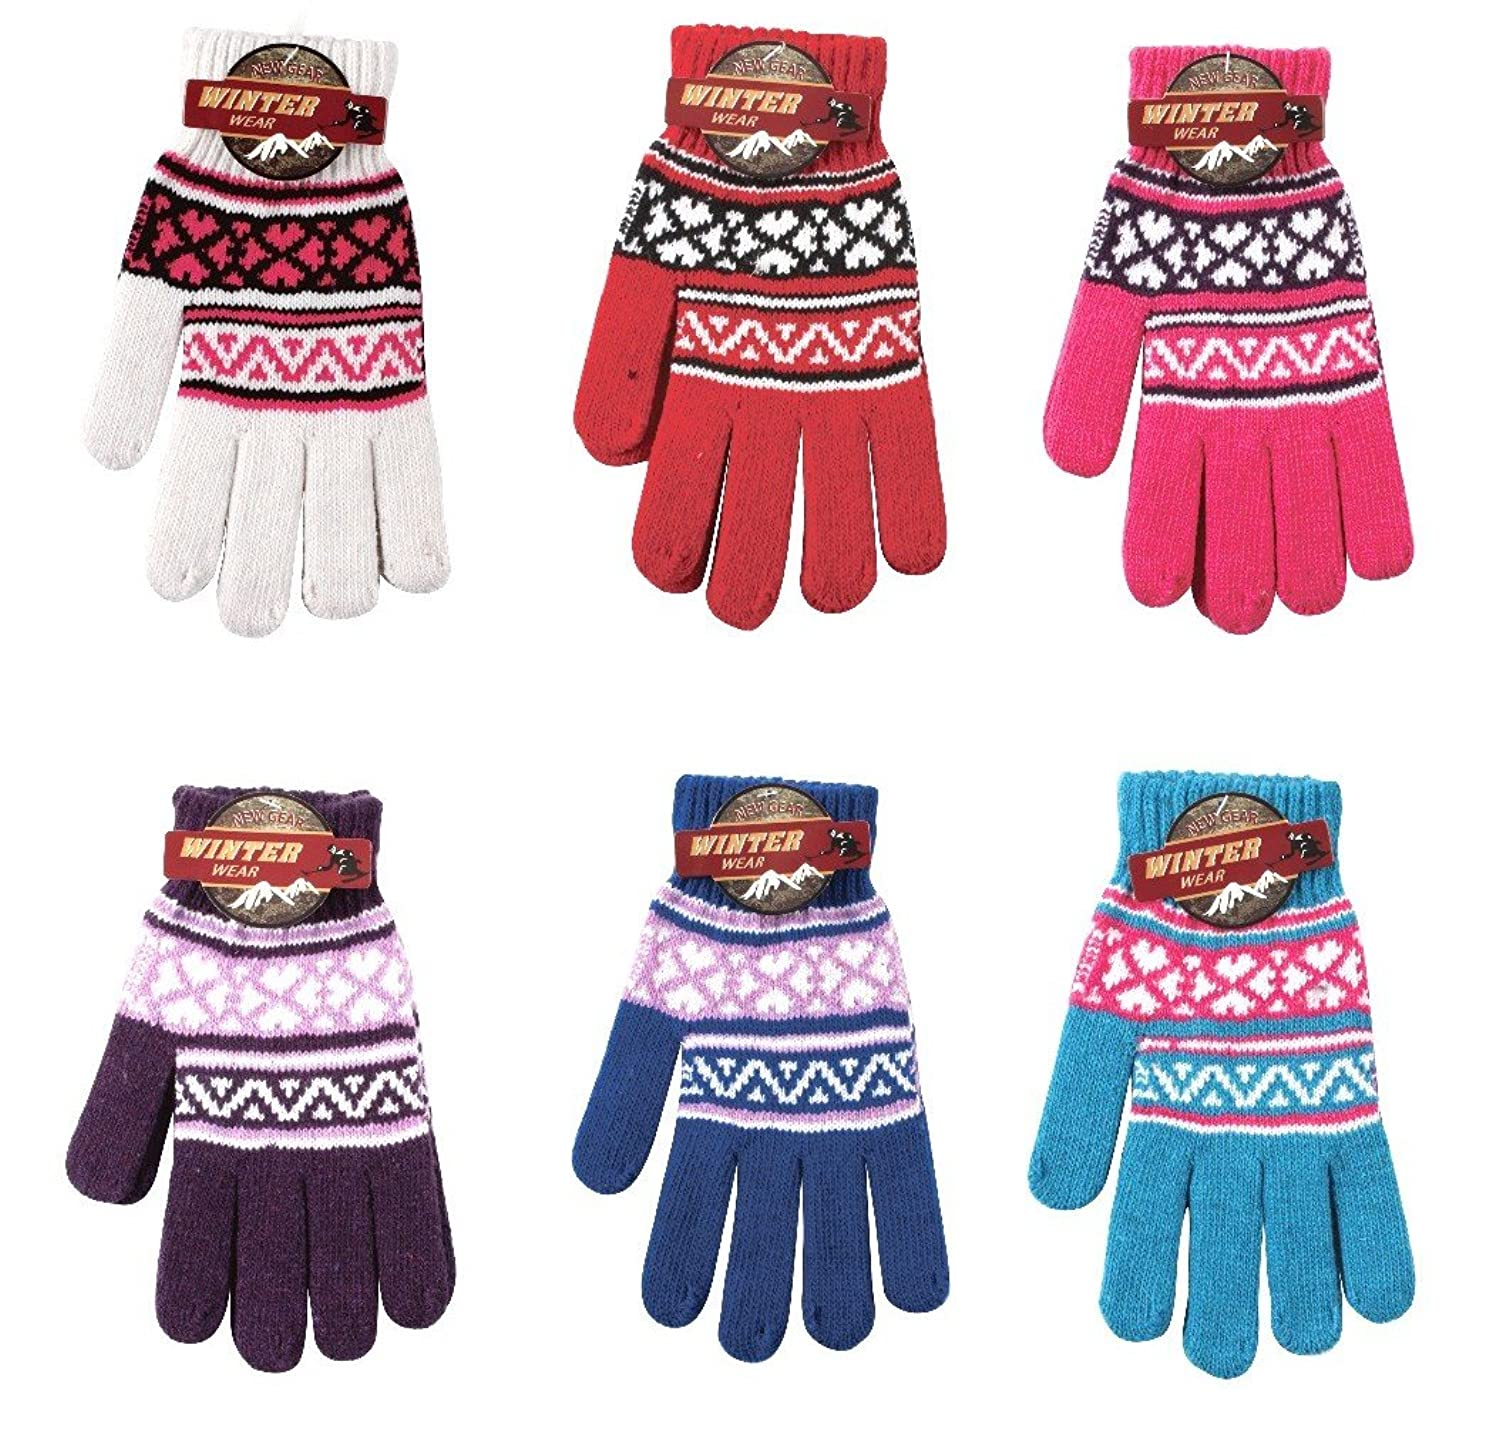 (3 Pair) Ladies Warm Knit Gloves One Size Fits All